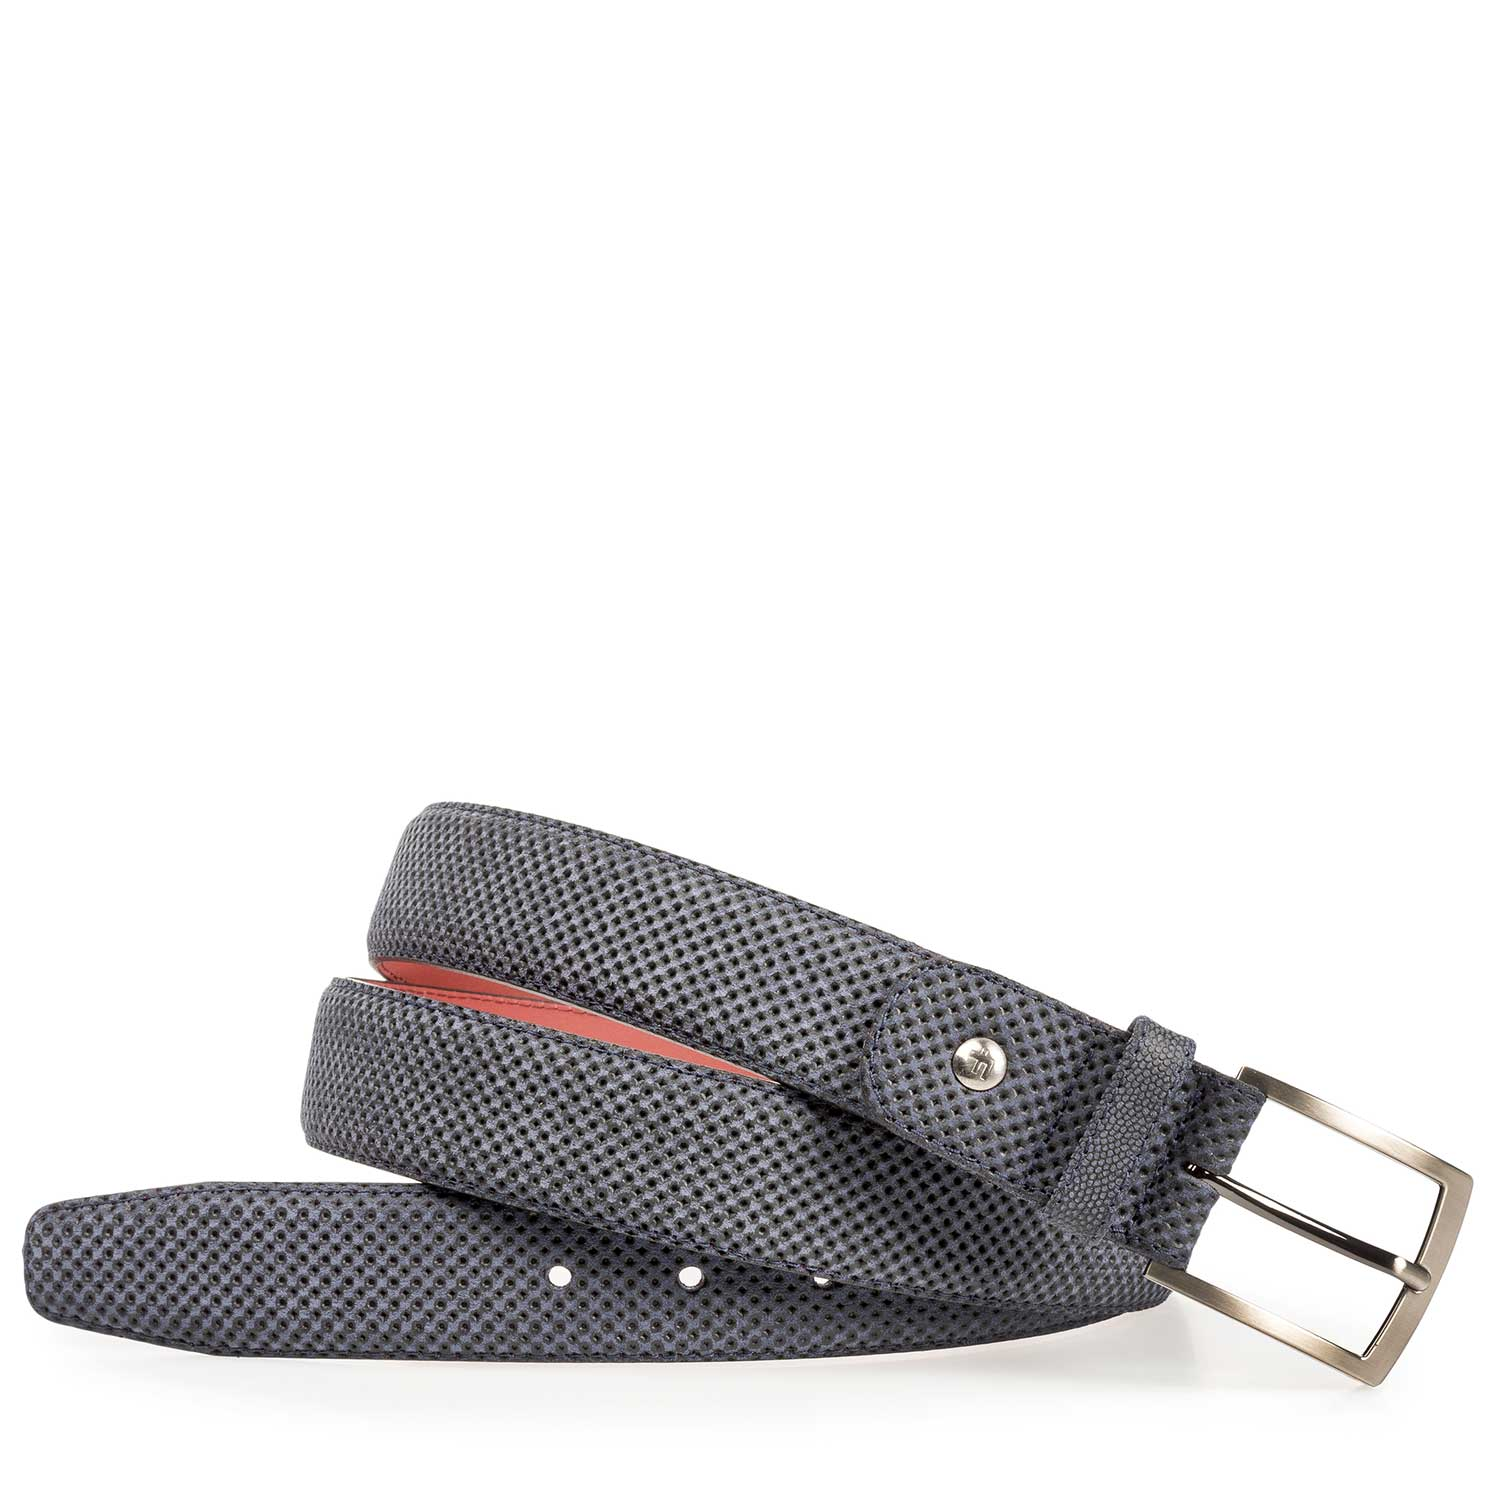 75188/23 - Blue suede leather belt with a print